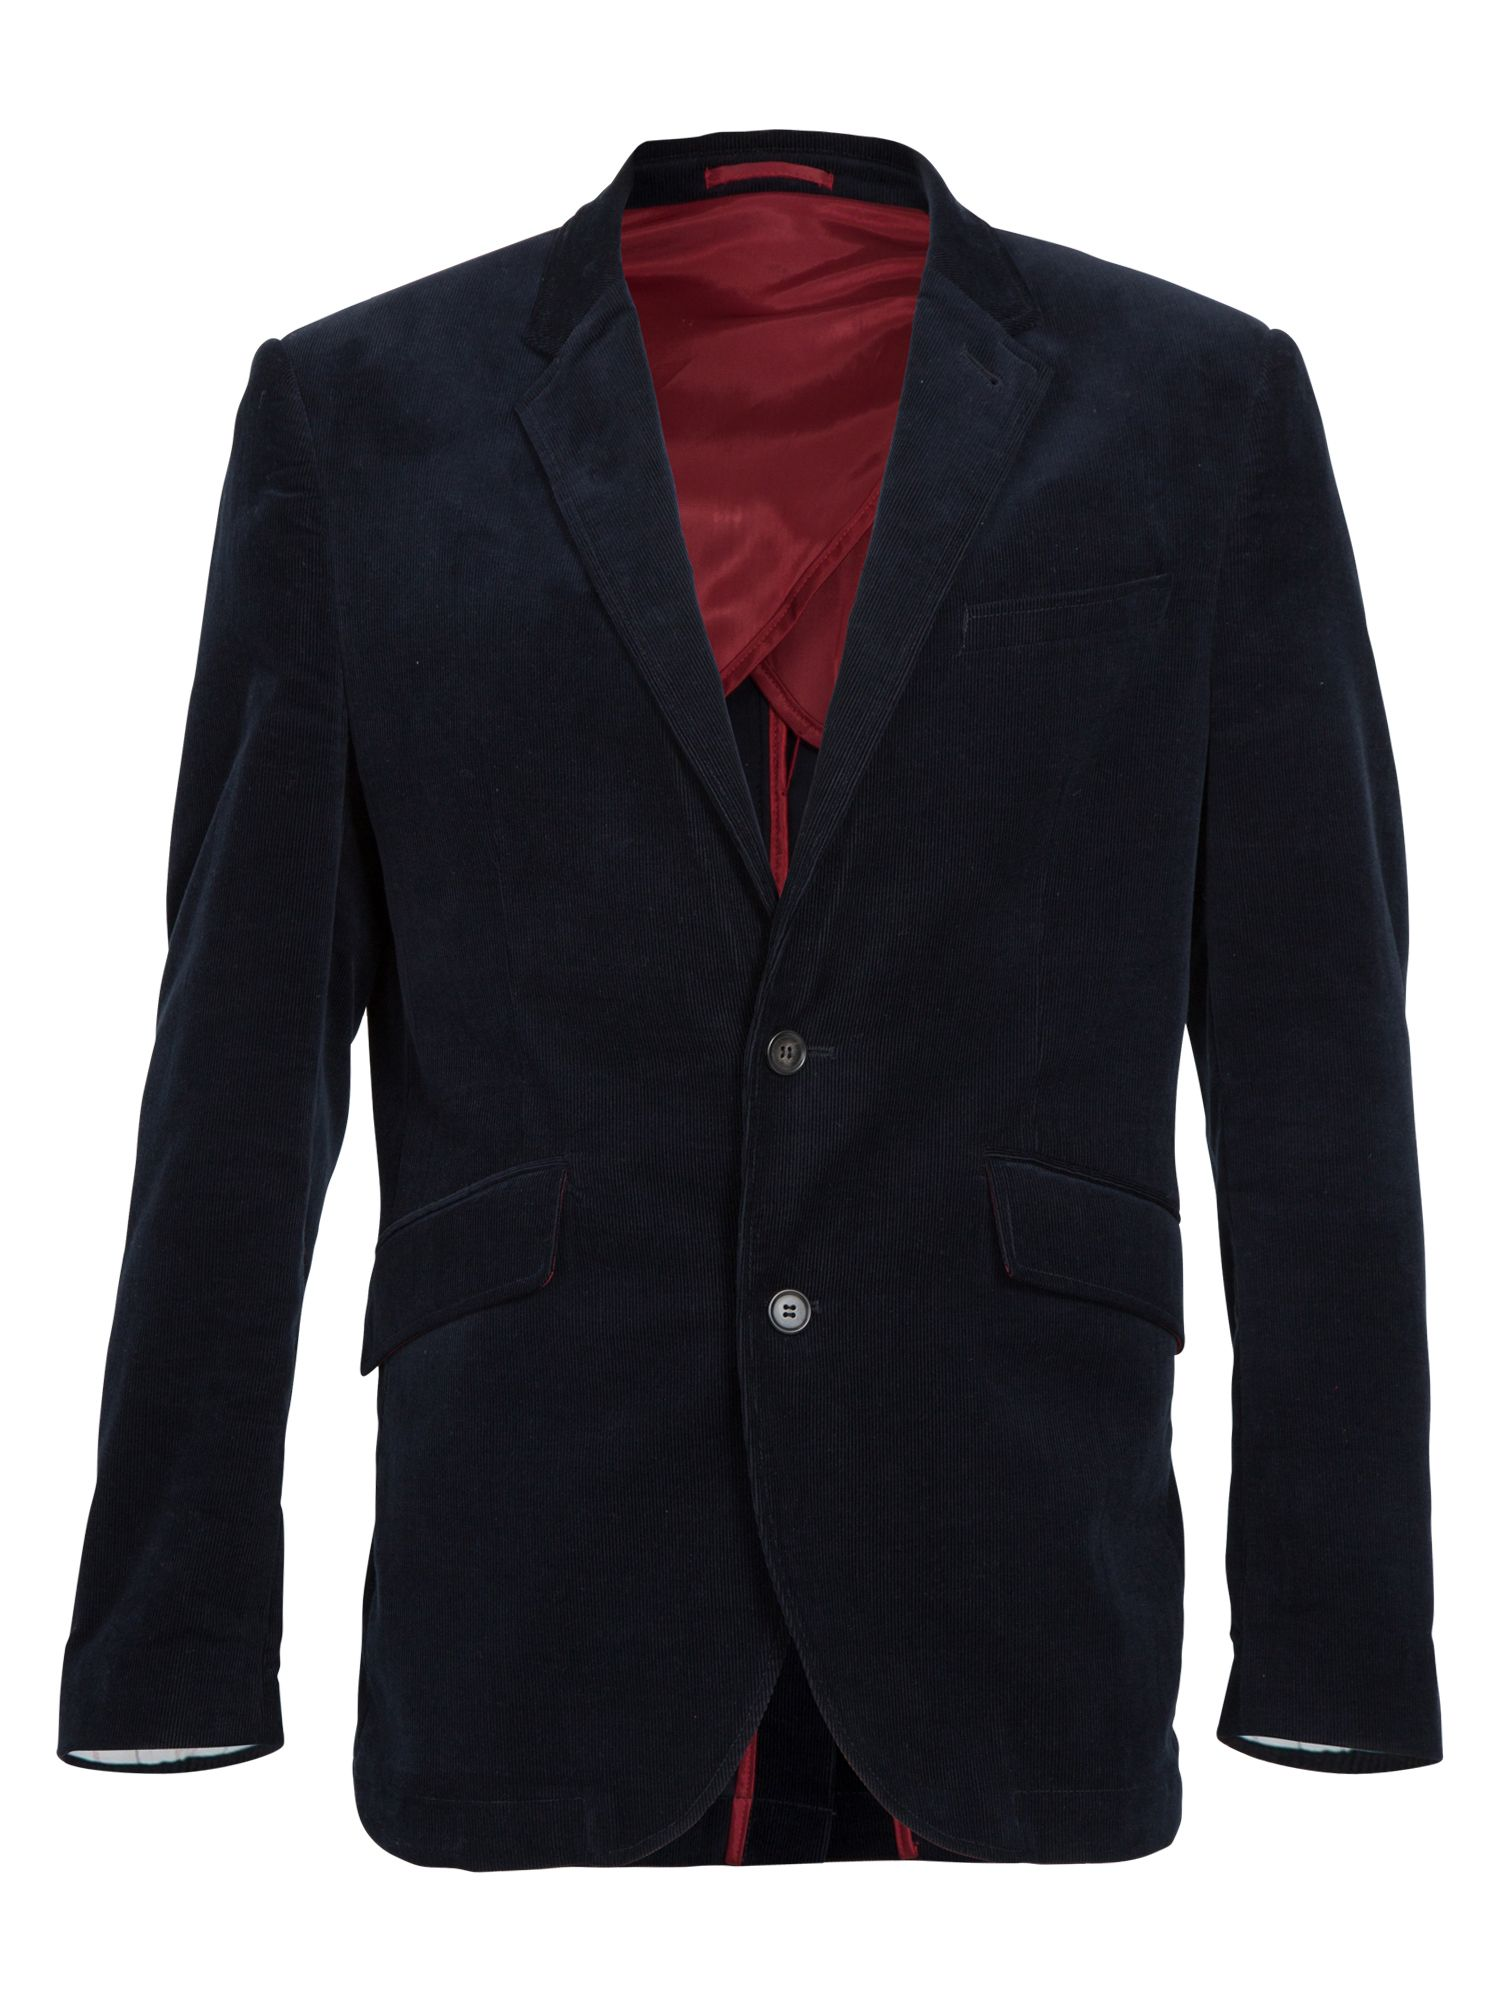 Rb corded blazer navy